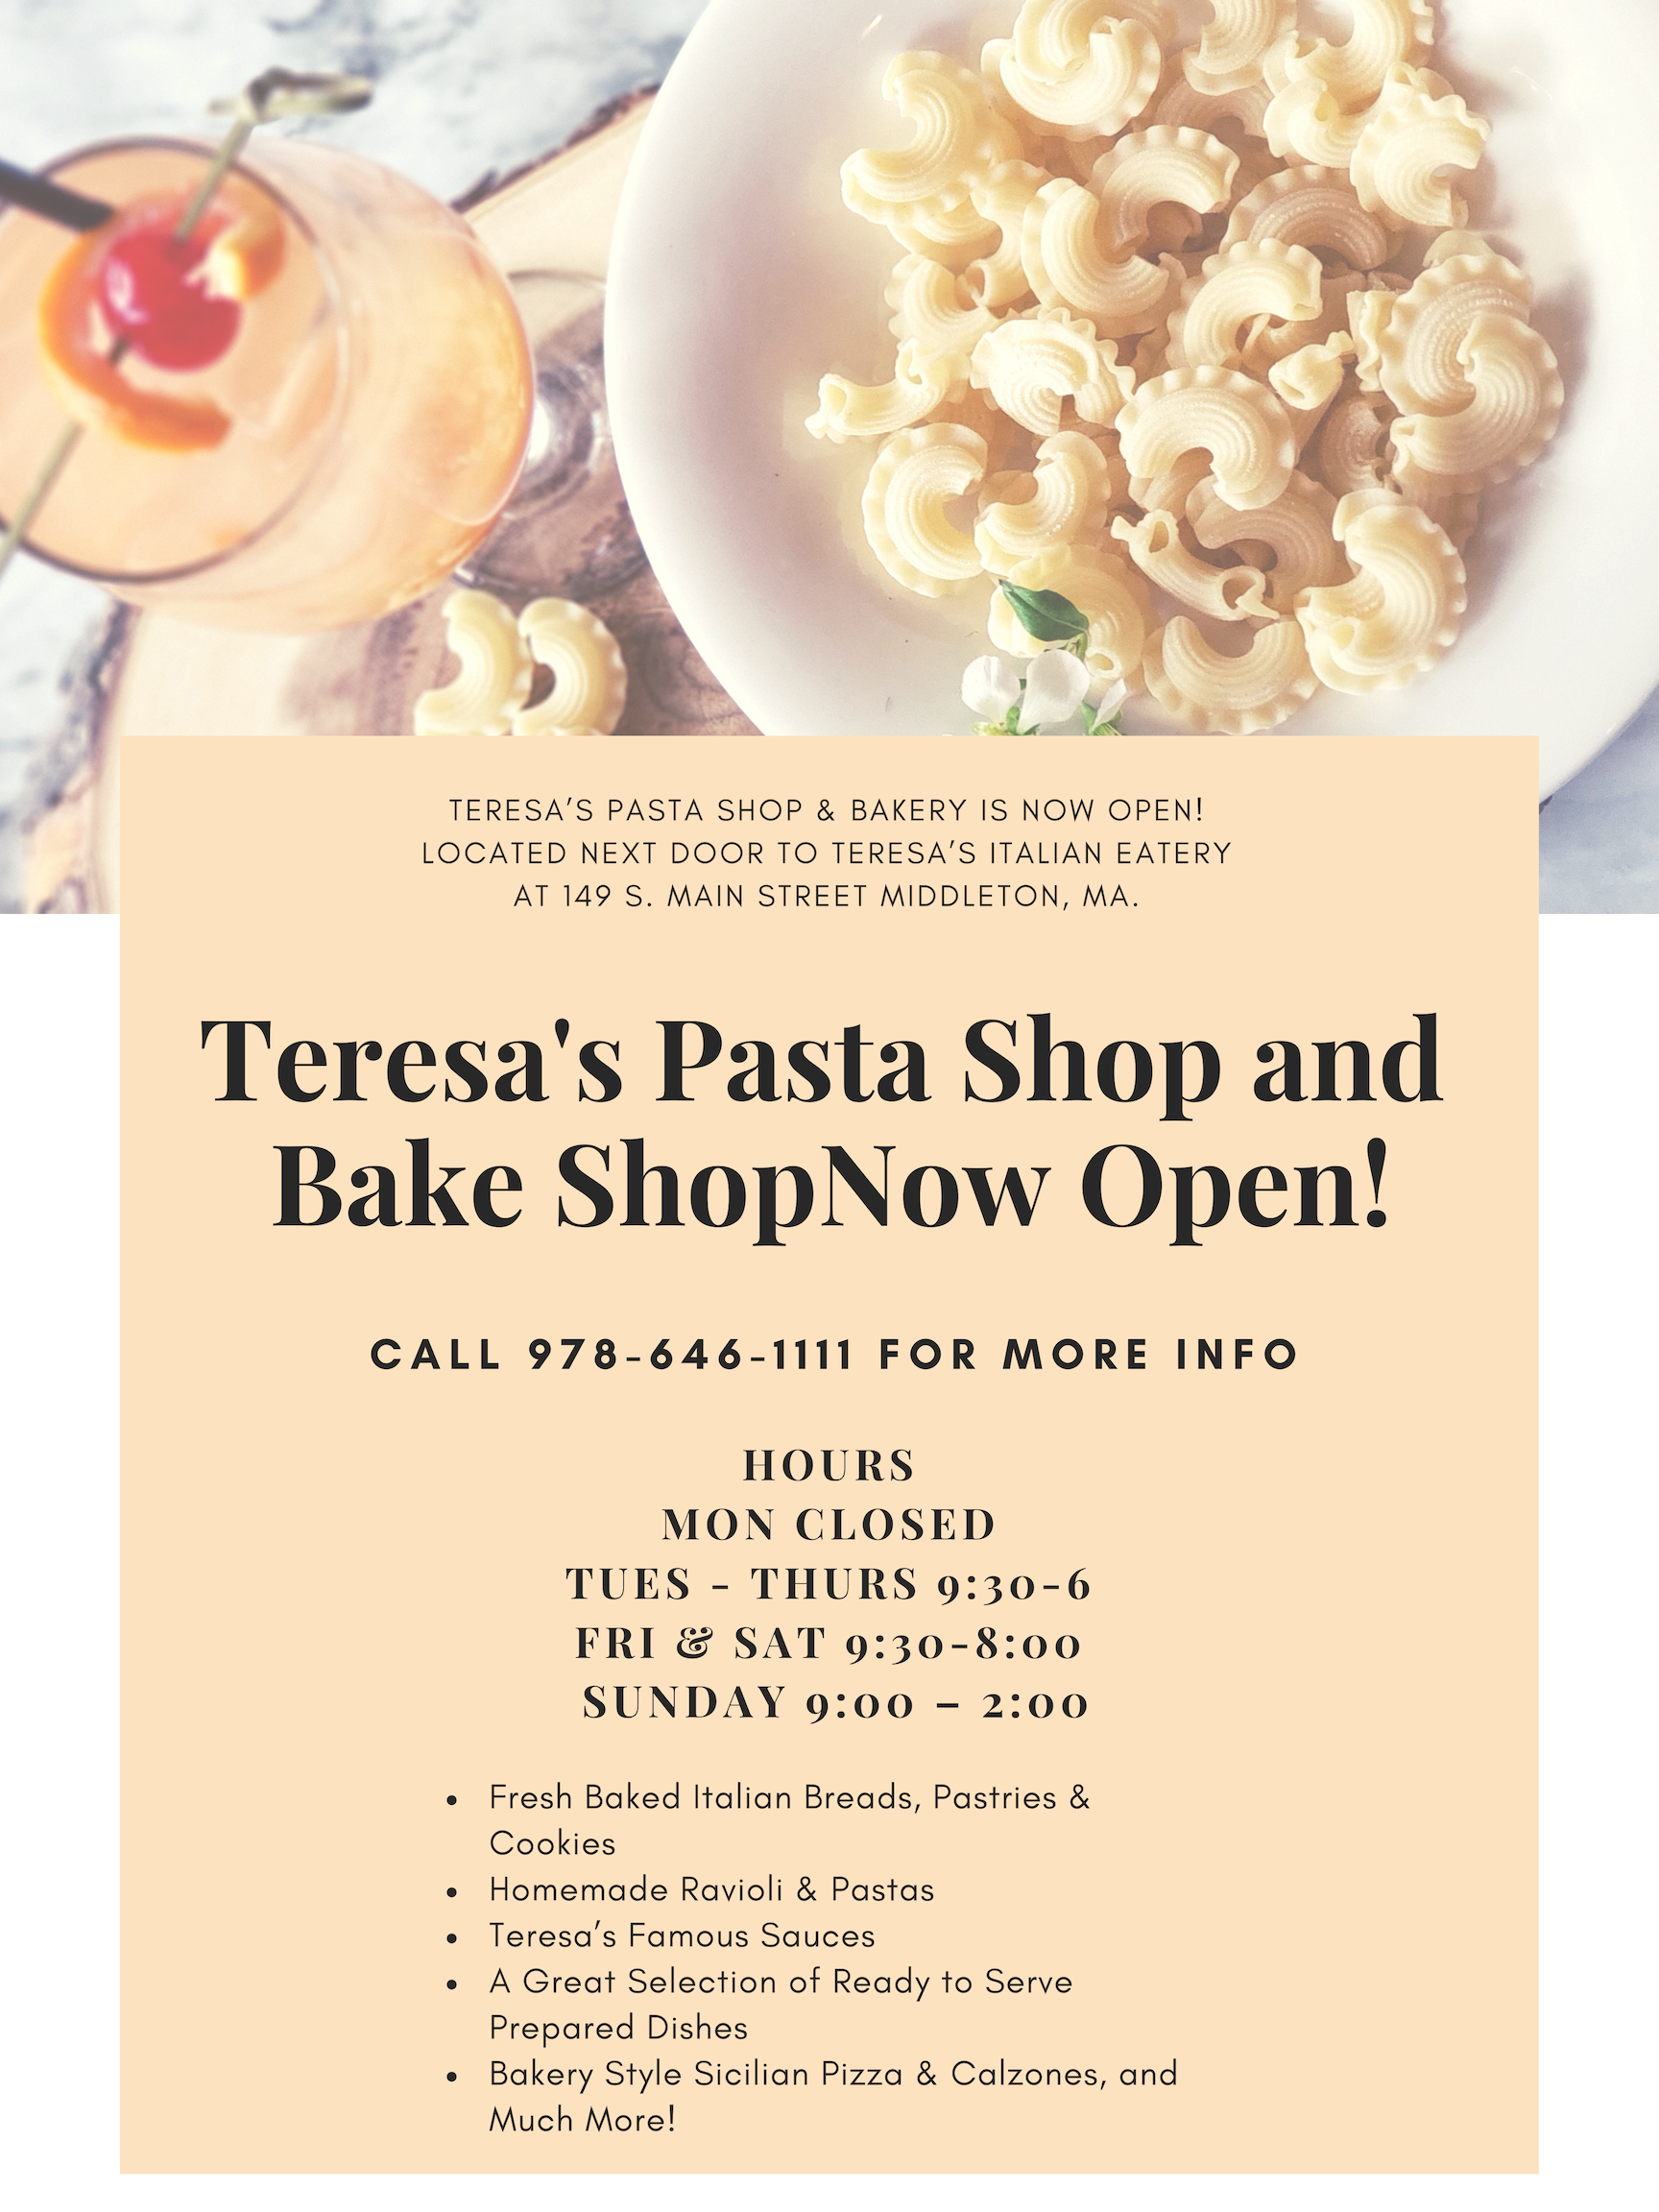 Teresa's Pasta Shop & Bake Shop Now Open!